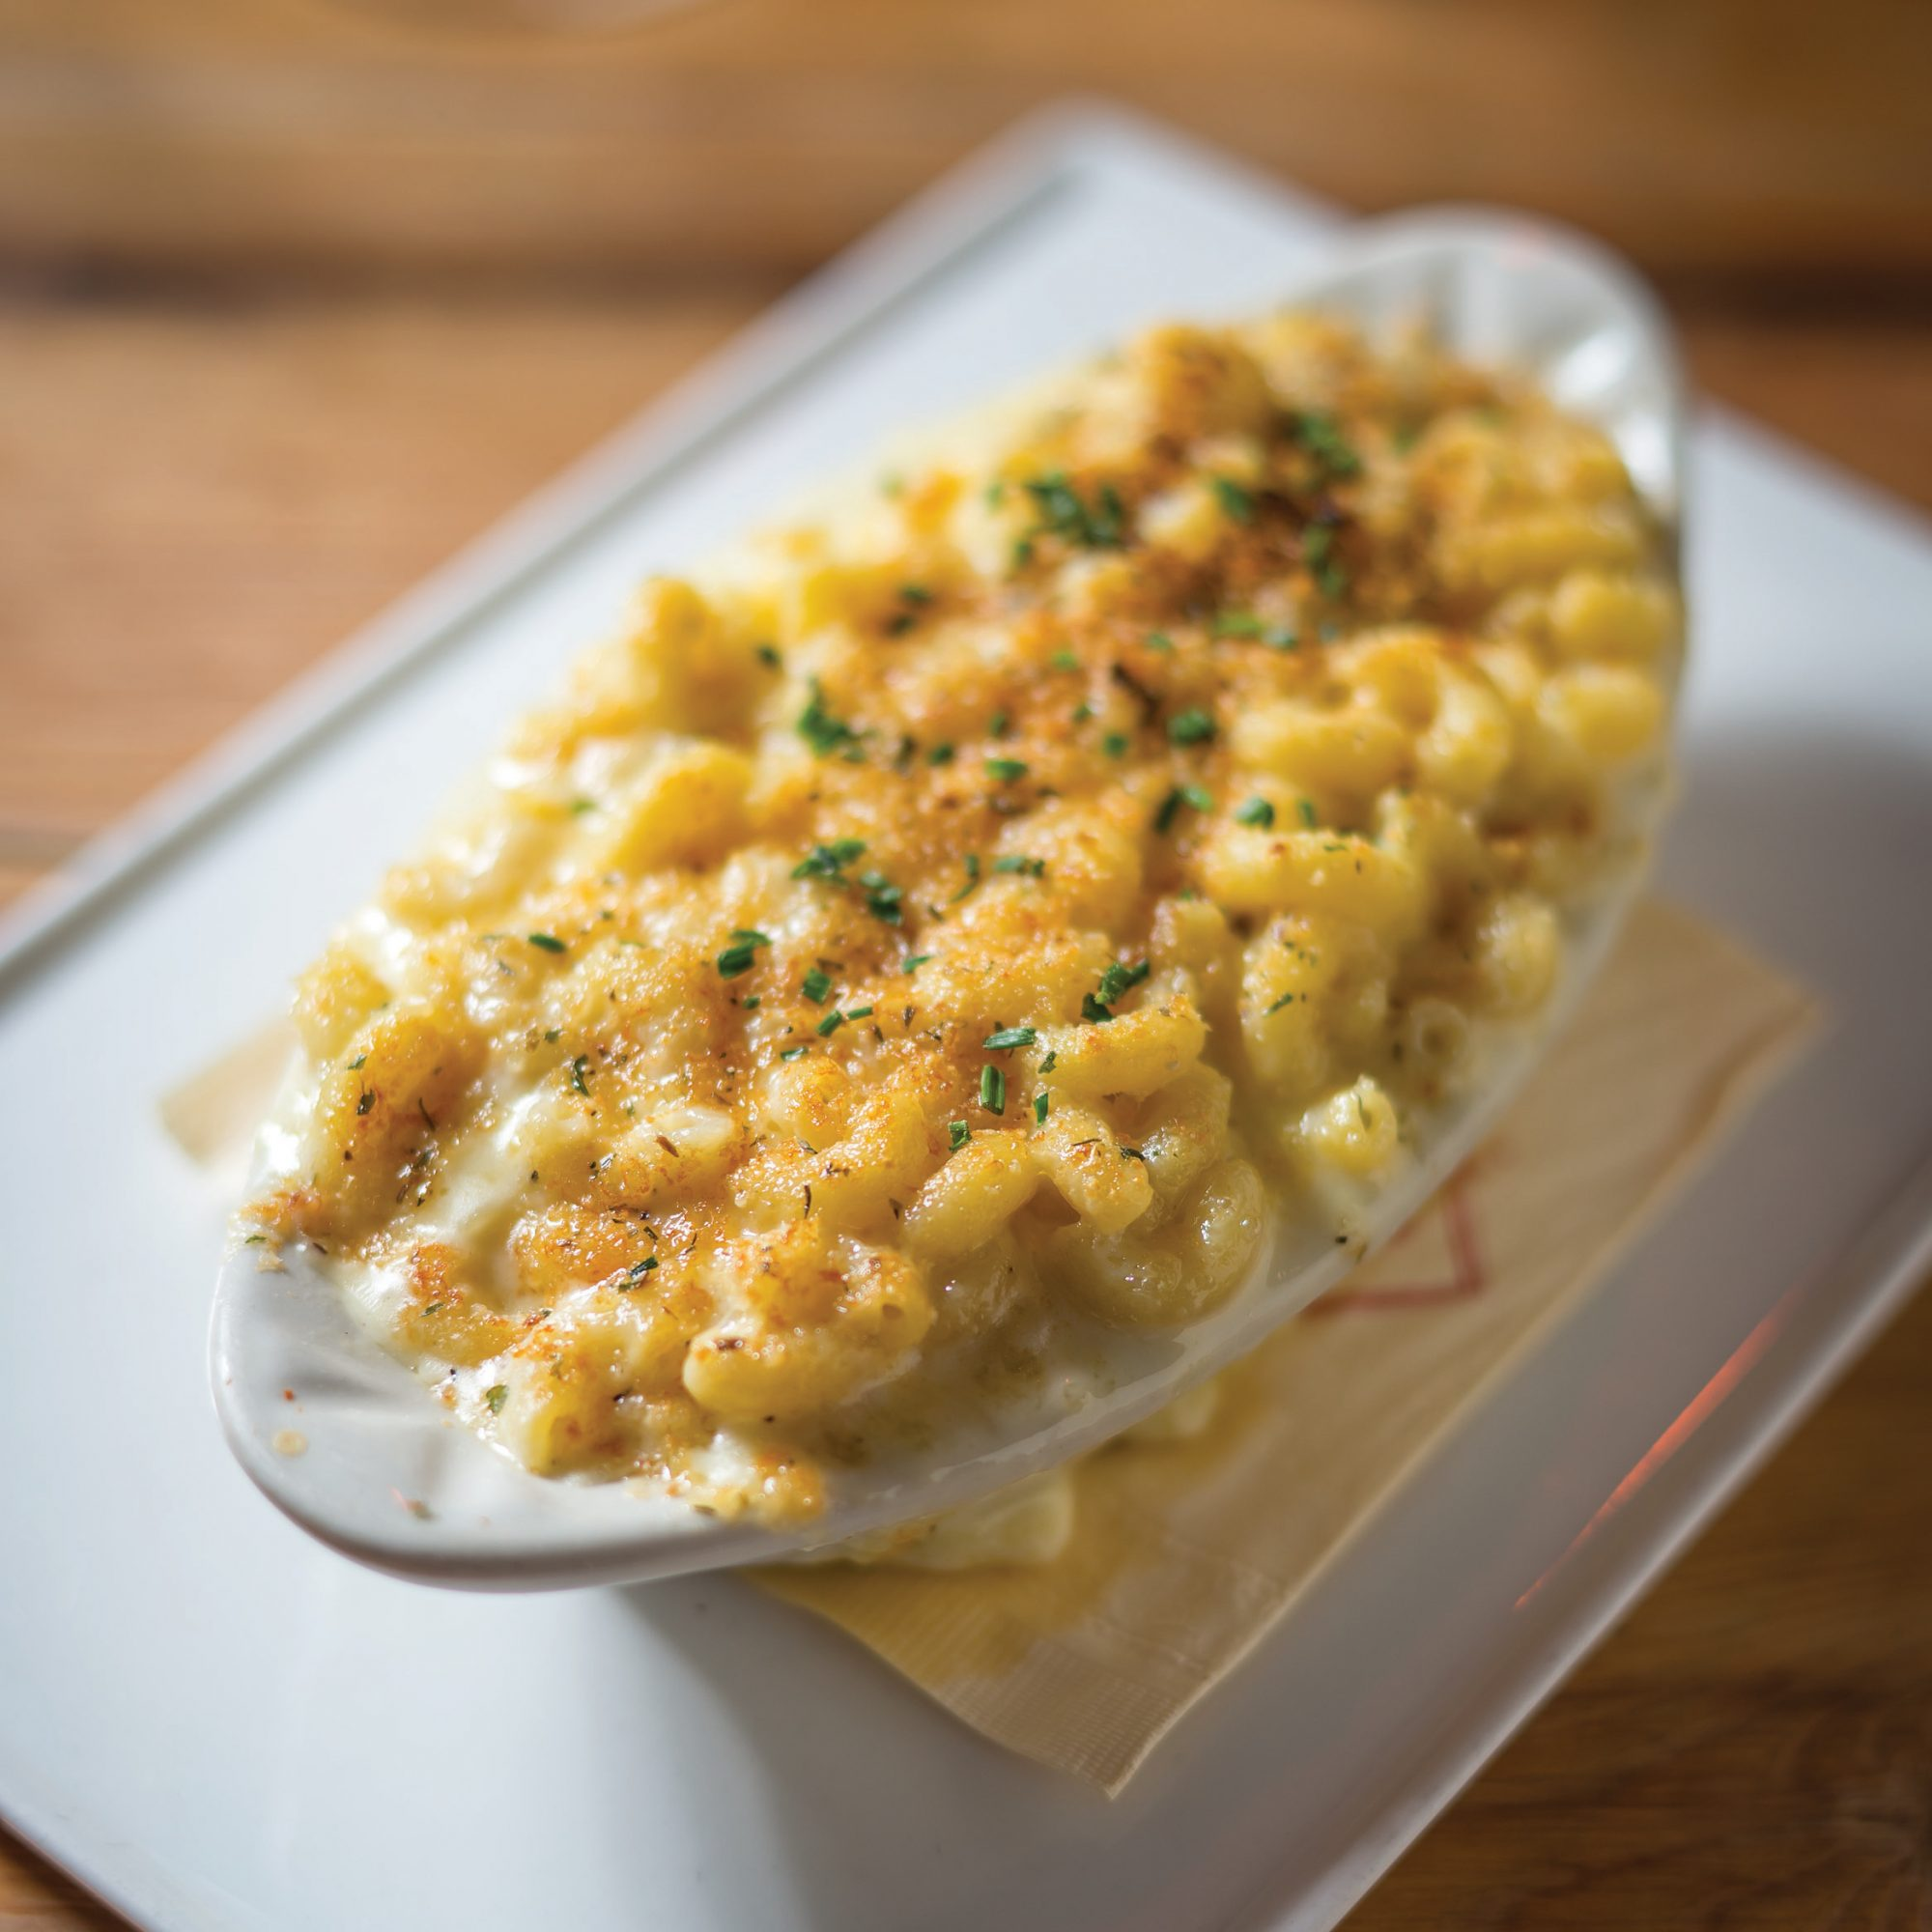 Murray's Mac and Cheese